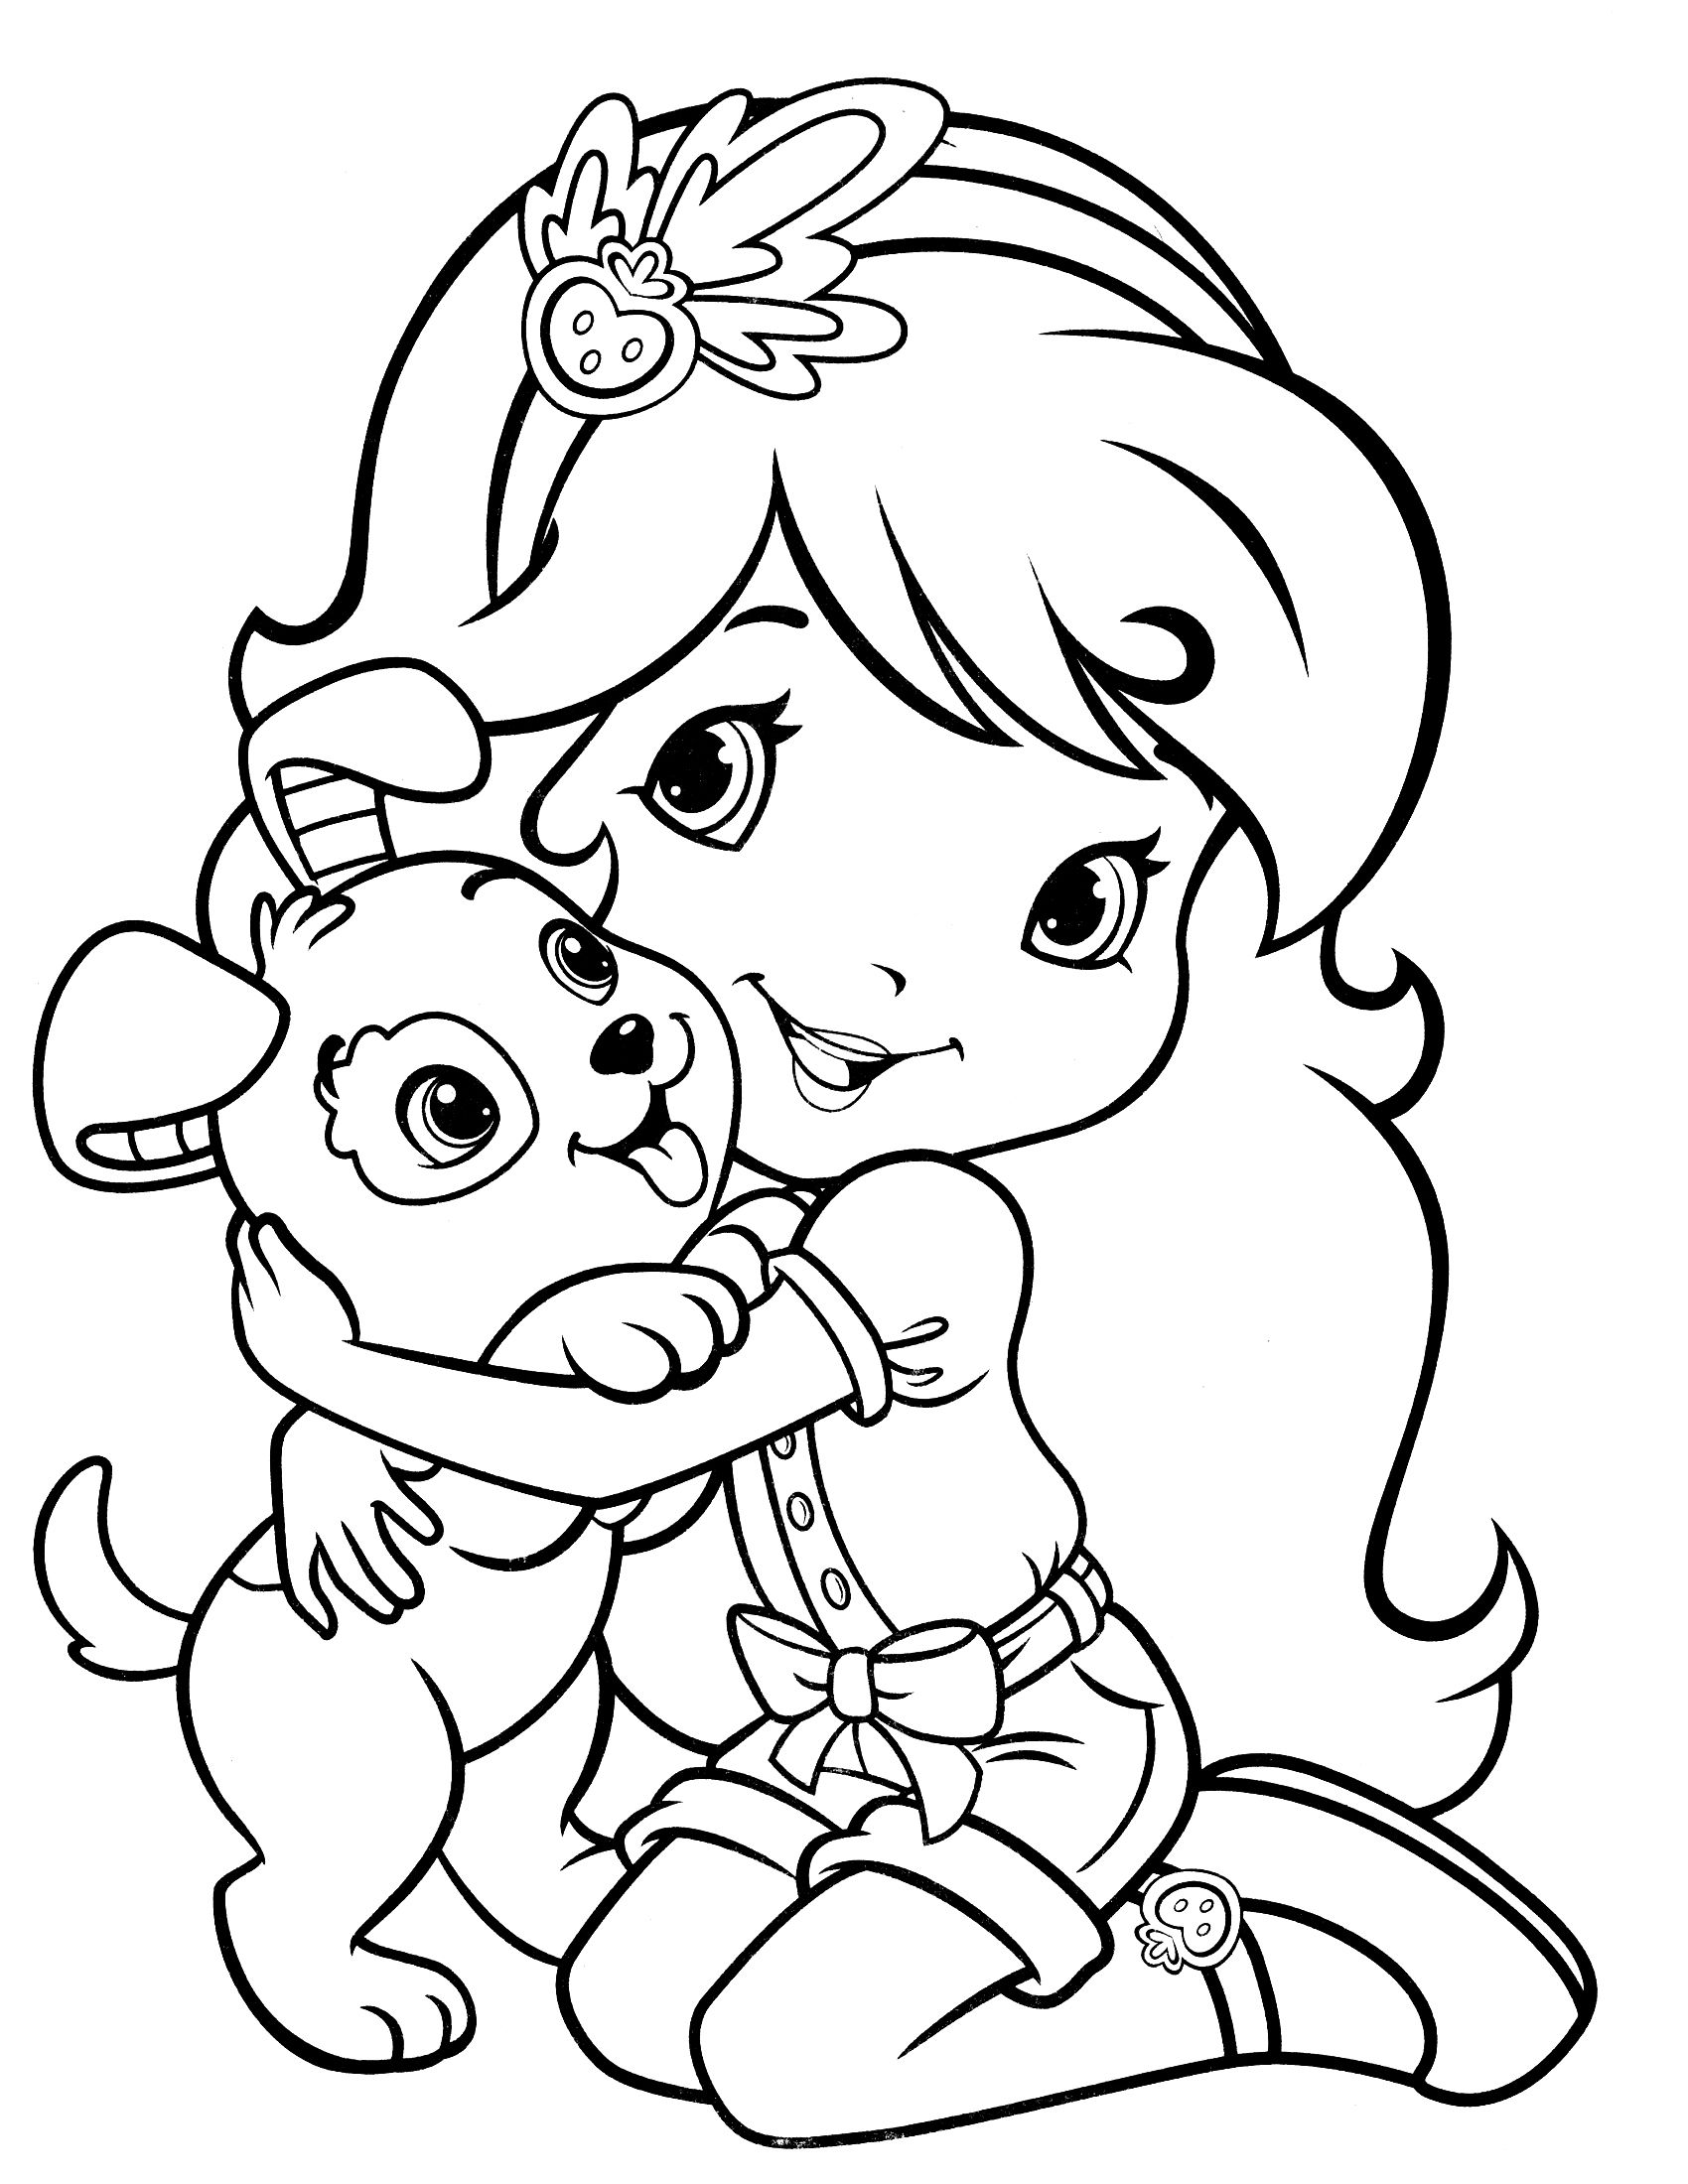 Uncategorized Coloring Strawberry Shortcake strawberry shortcake coloring page 73 jpg pages games 2